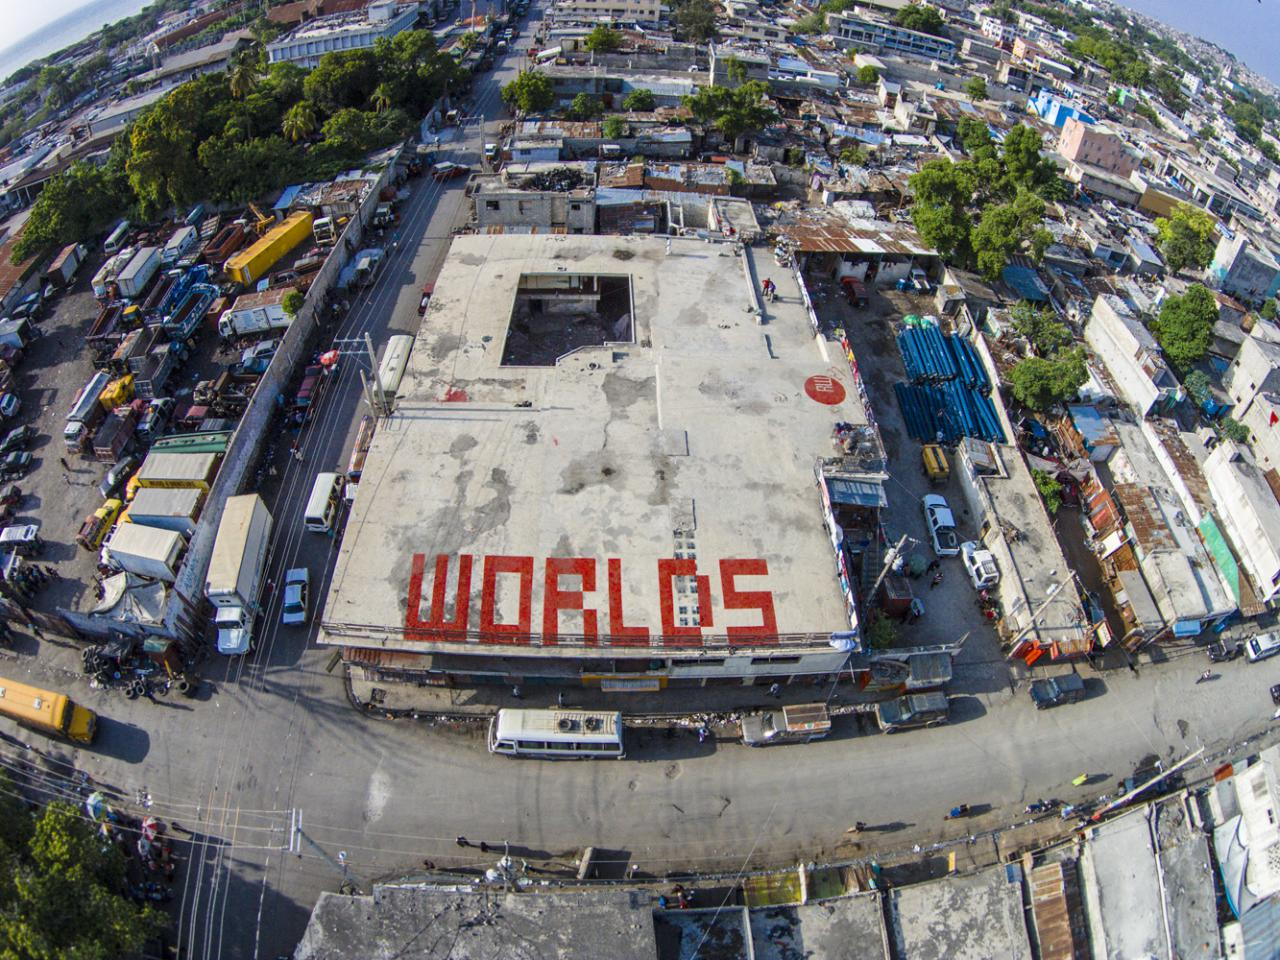 """The word """"worlds"""" written in big red letters on a roof top in haiti, view from above"""